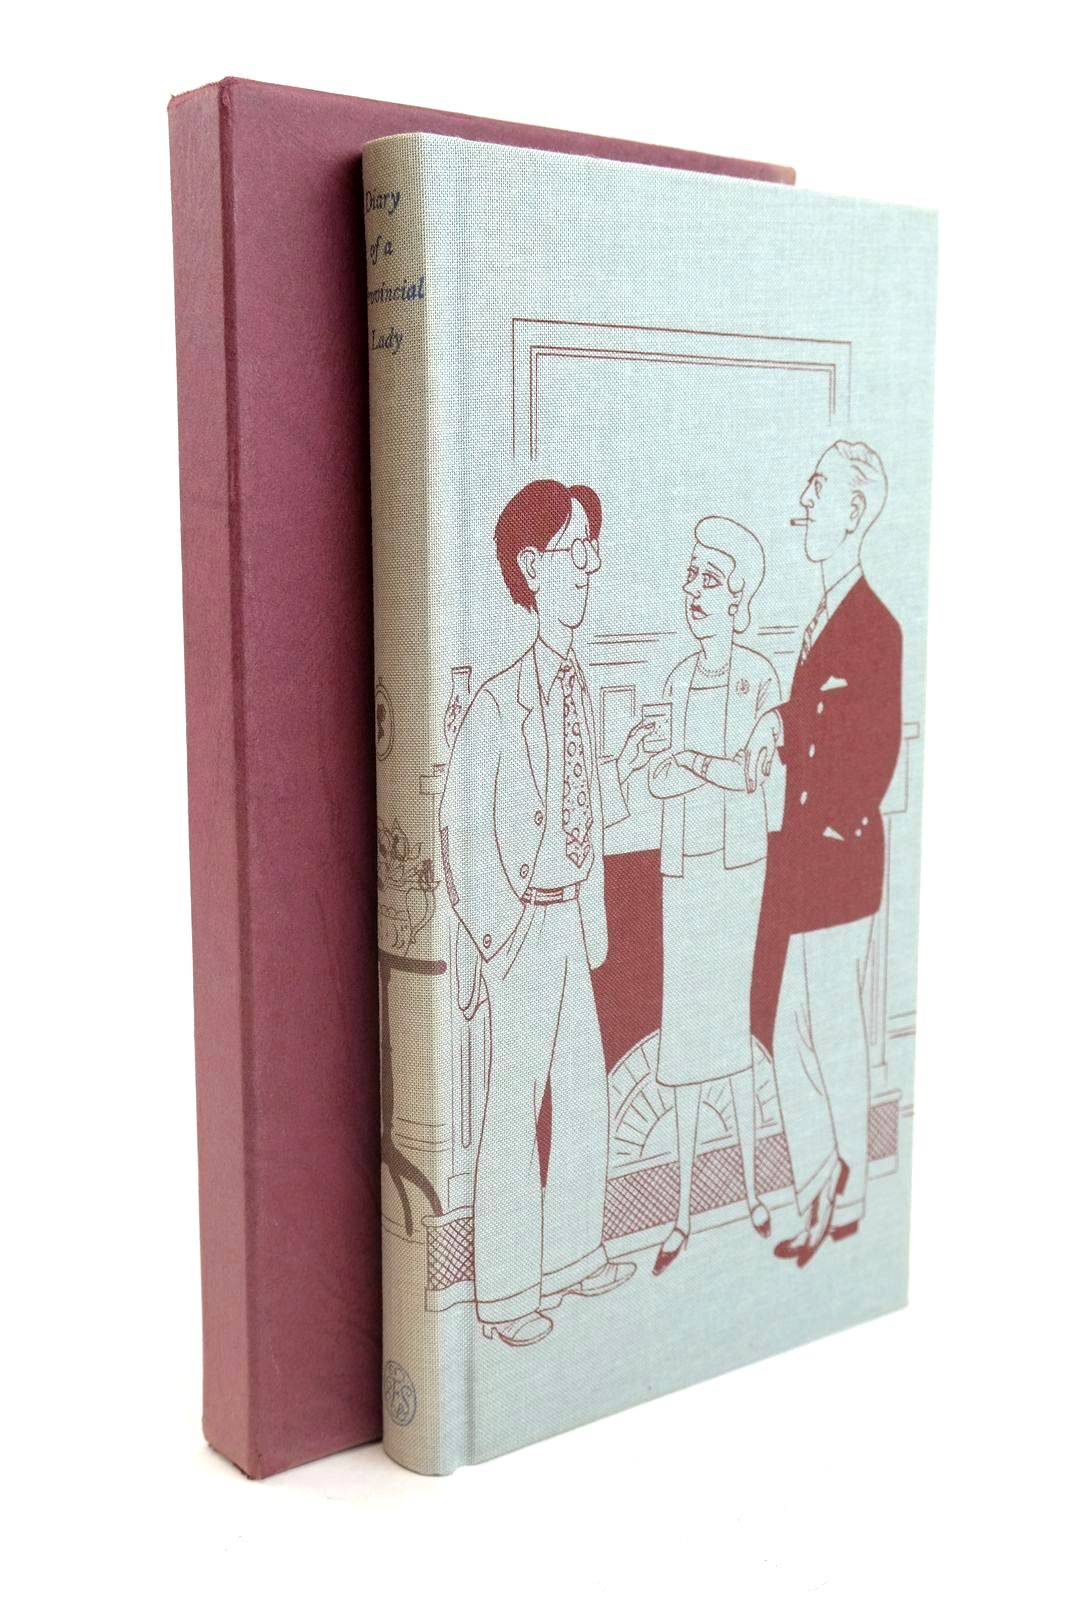 Photo of DIARY OF A PROVINCIAL LADY written by Delafield, E.M. Cooper, Jilly illustrated by Bentley, Nicolas published by Folio Society (STOCK CODE: 1320033)  for sale by Stella & Rose's Books